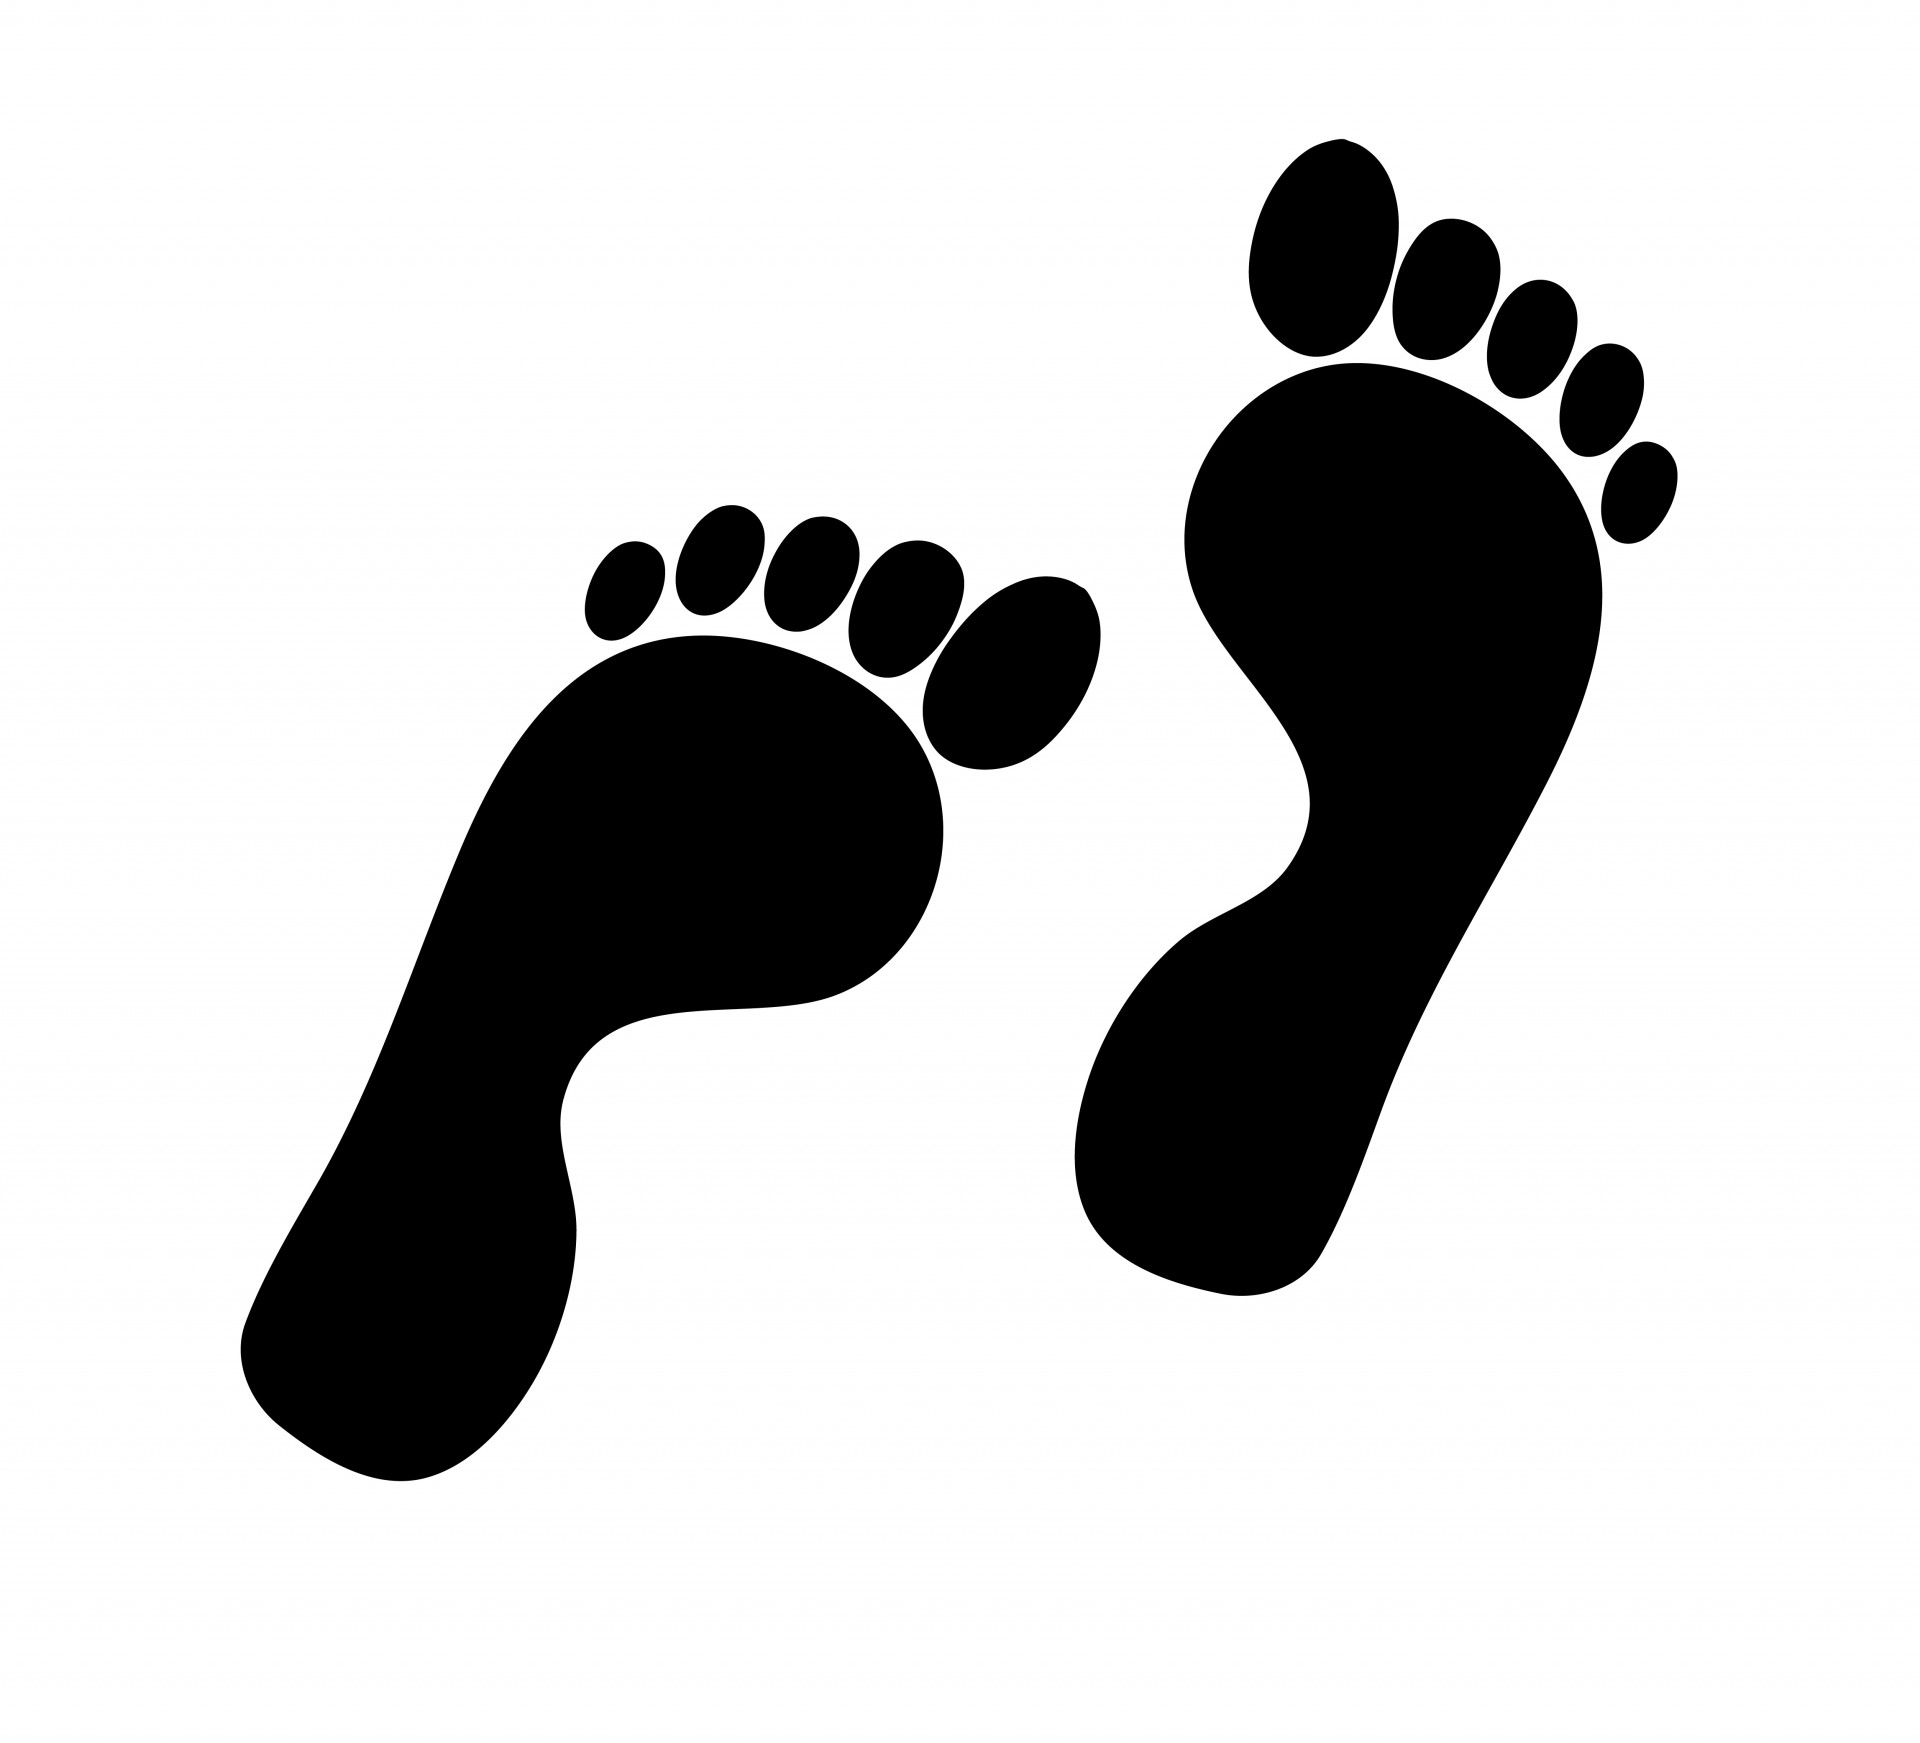 clipart free download Footstep silhouette at getdrawings. Steps clipart barefoot